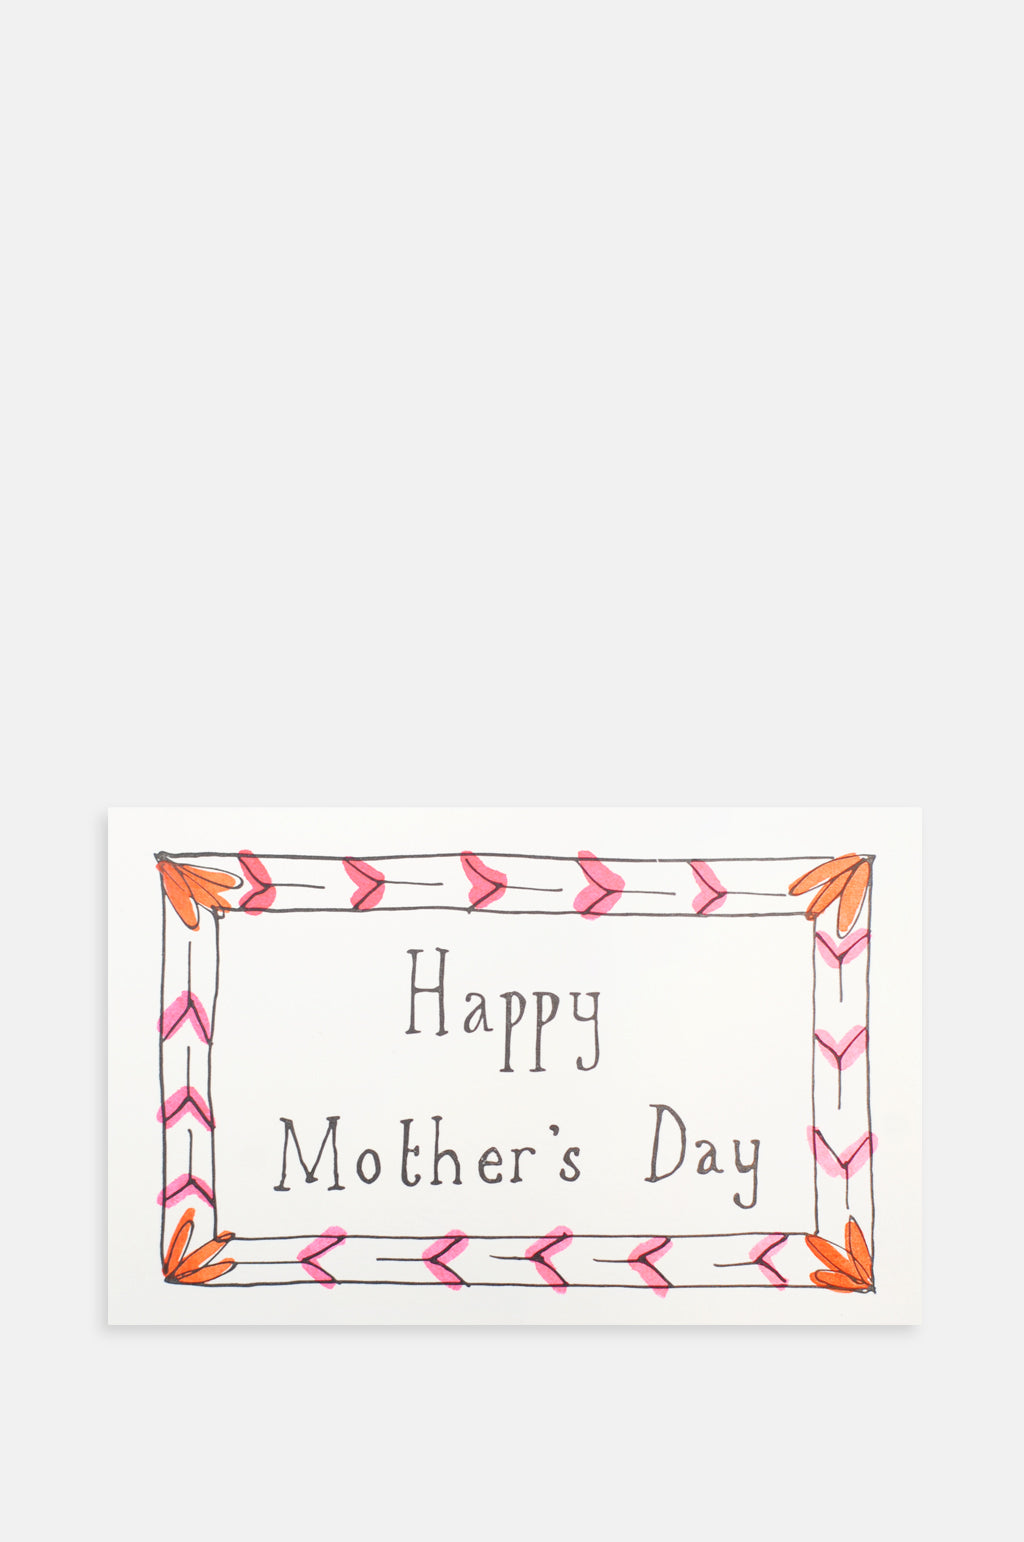 Mothers Day Border Card